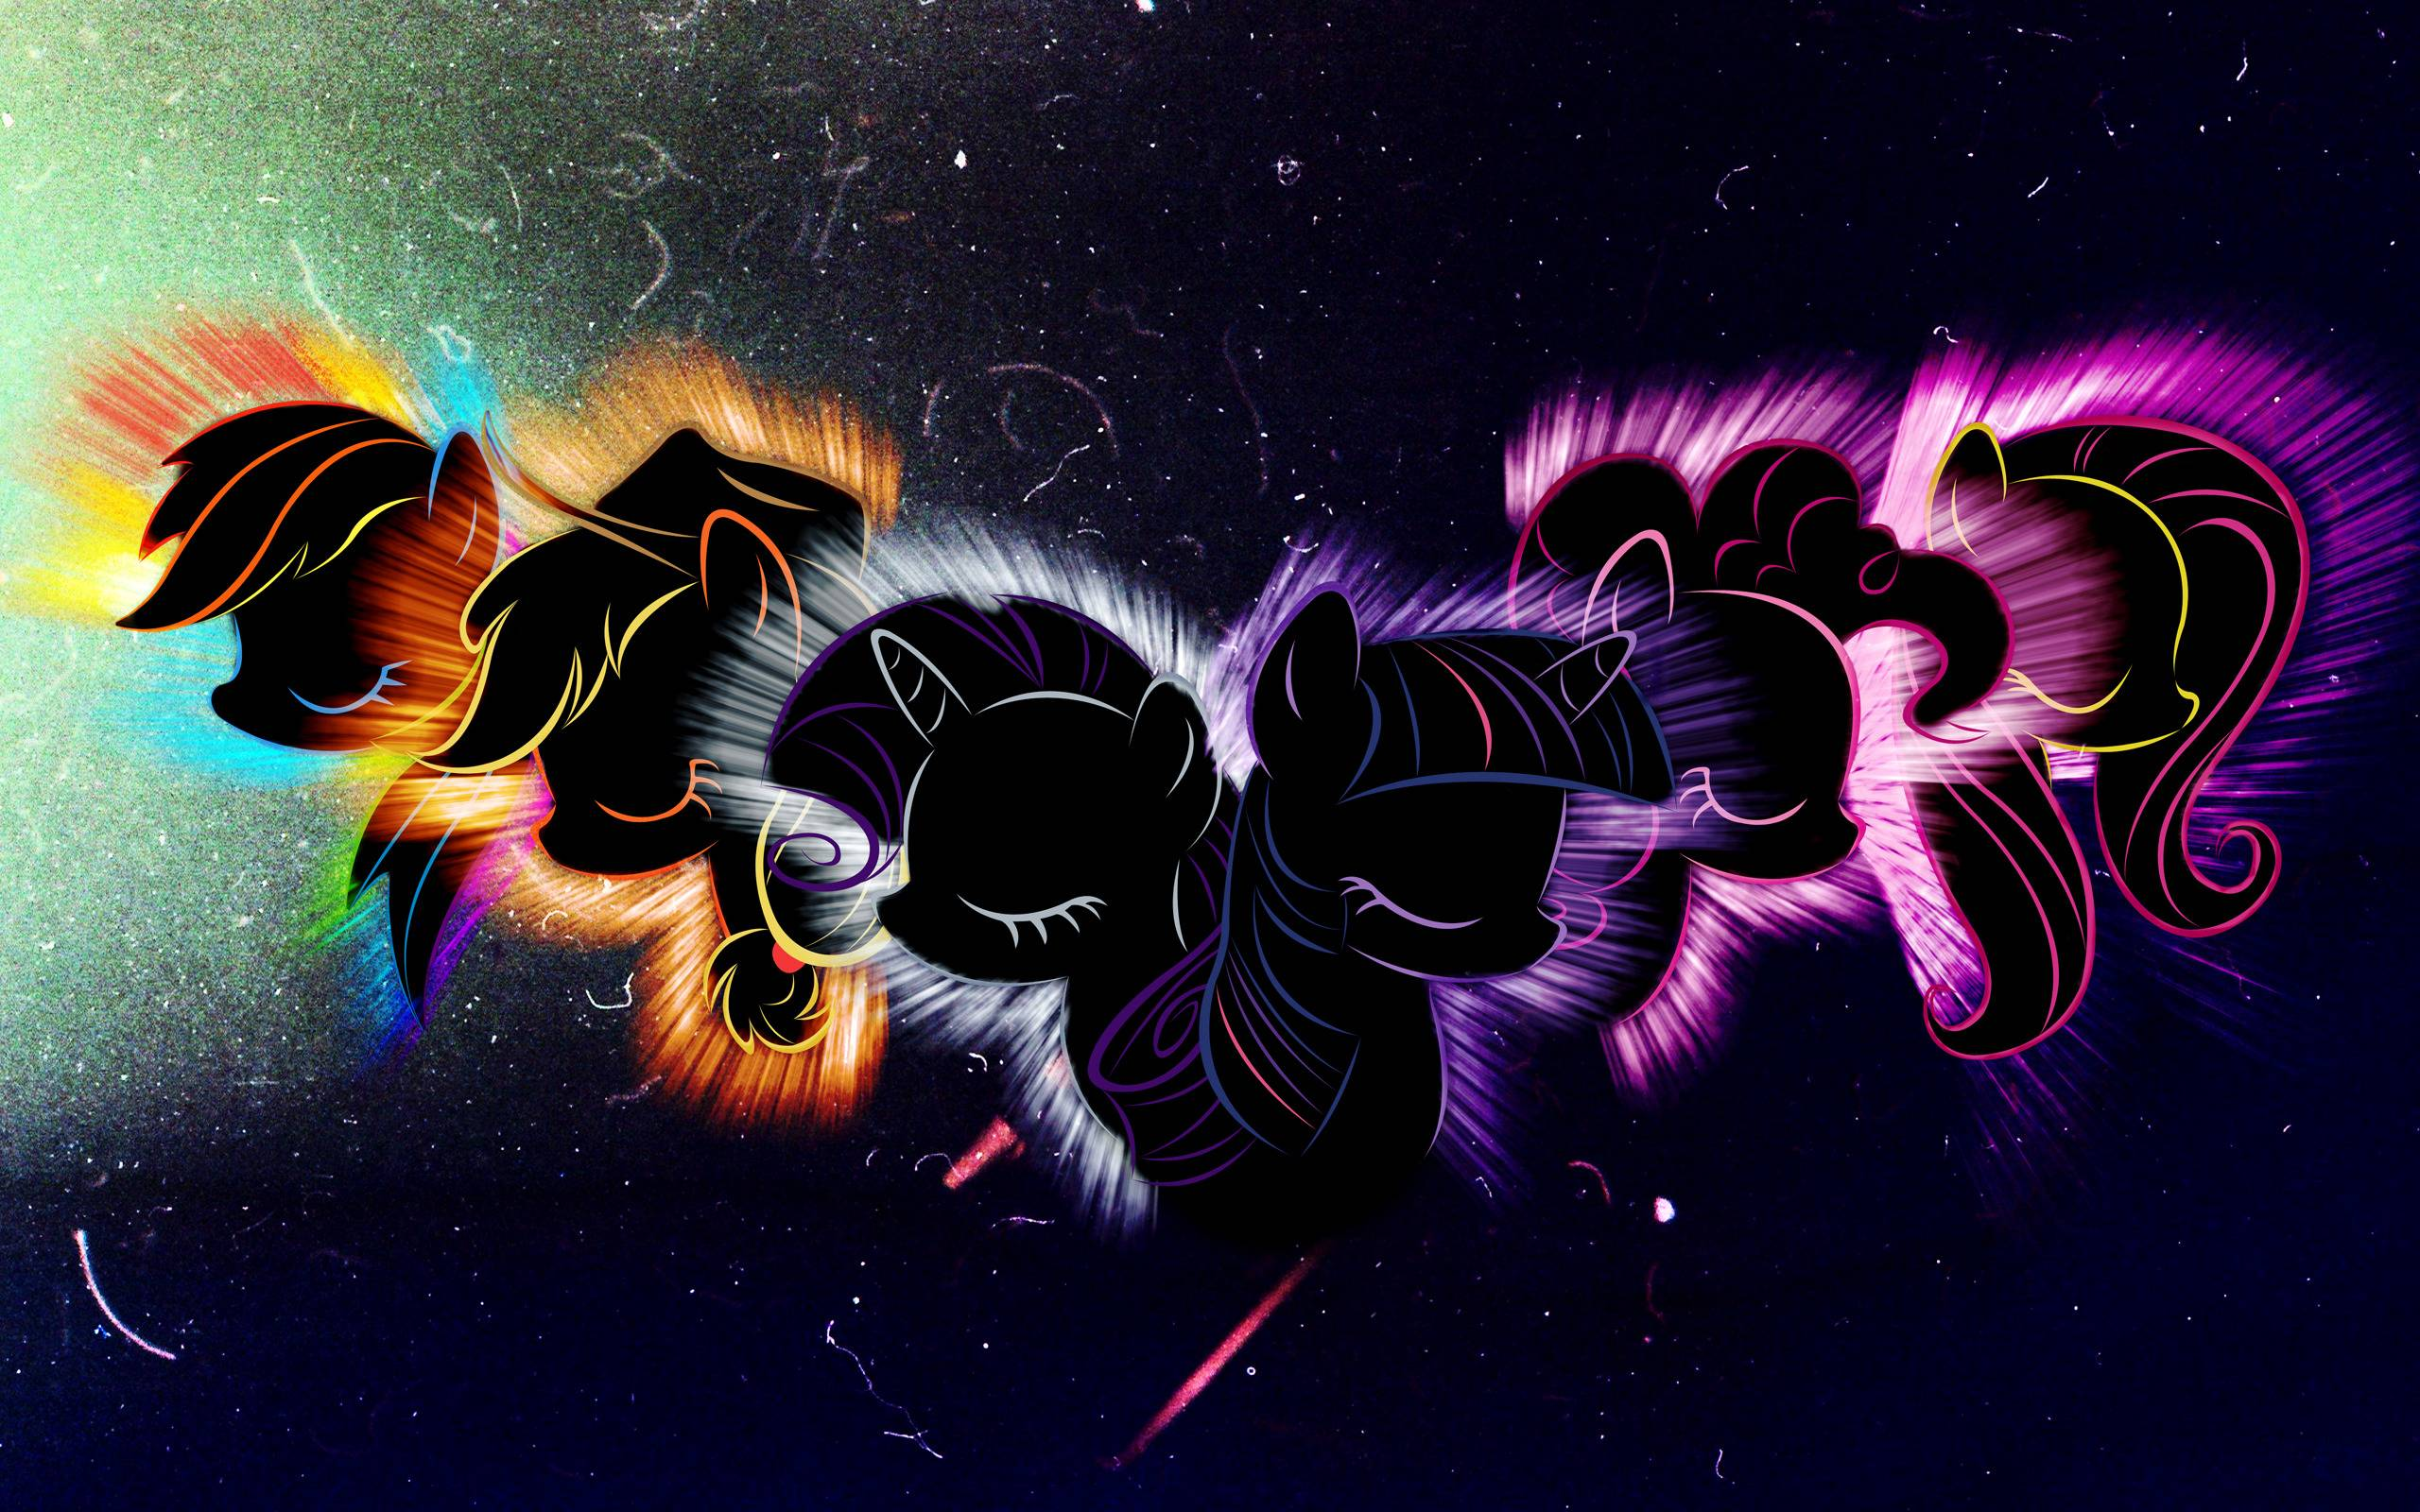 mlp background pony wallpapers - photo #25